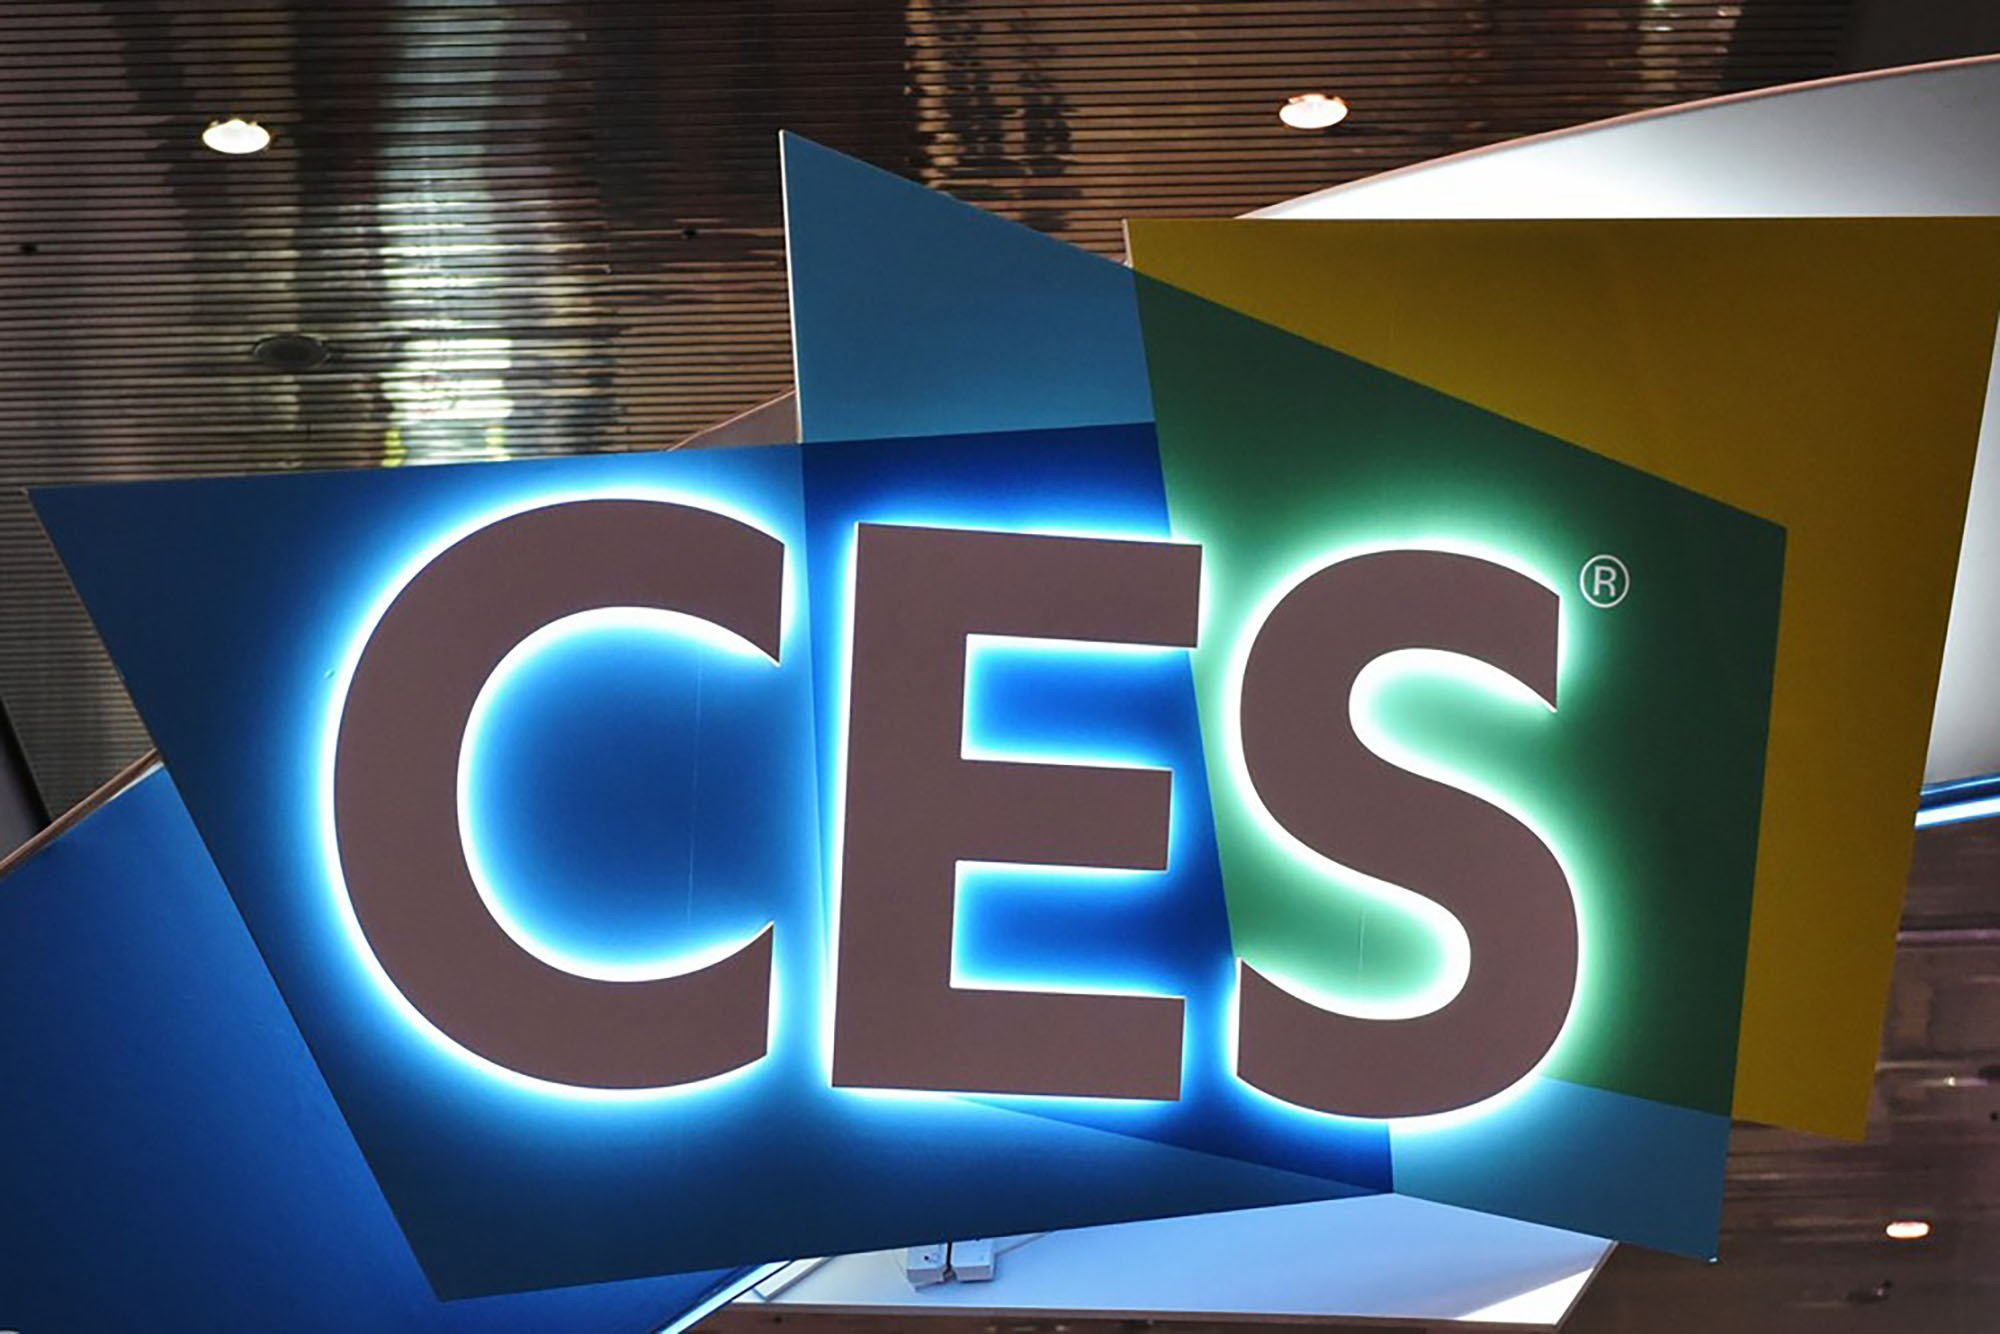 Cool new gadgets to showcase in Las Vegas at CES